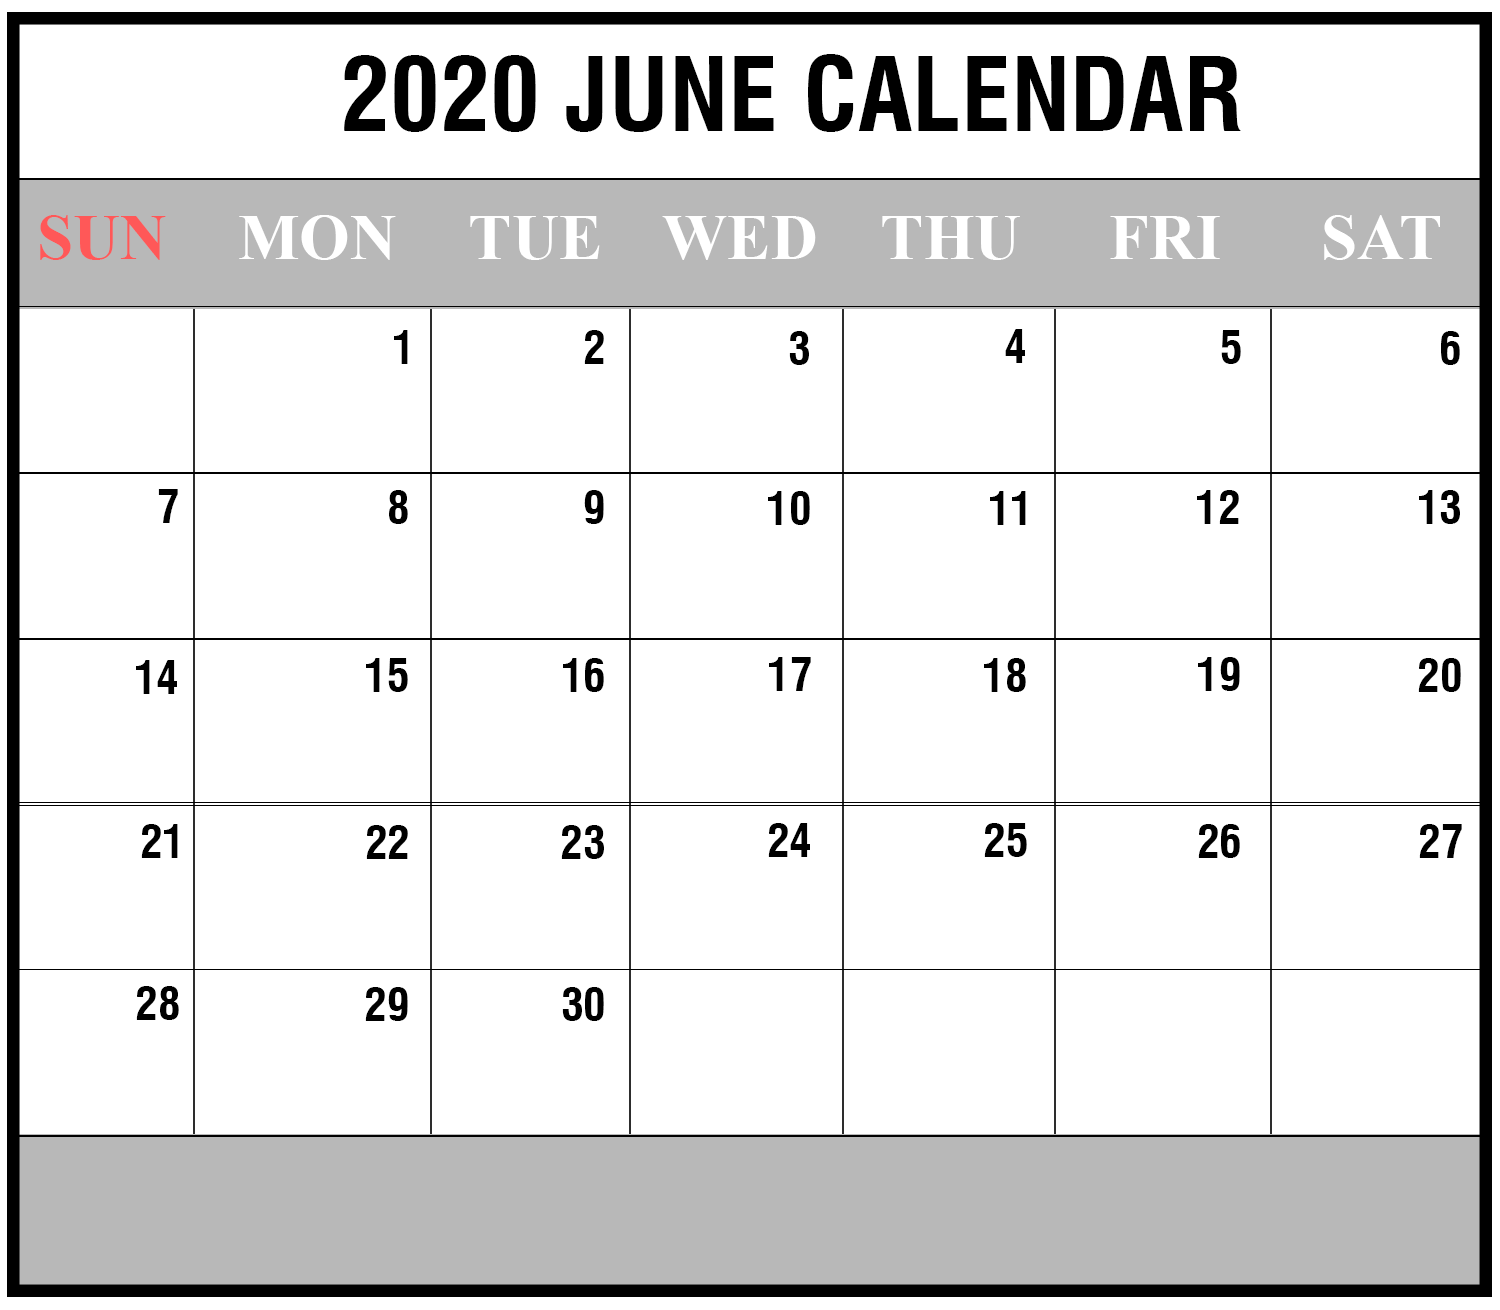 Calendar June 2020.June 2020 3 Printable Template Calendar